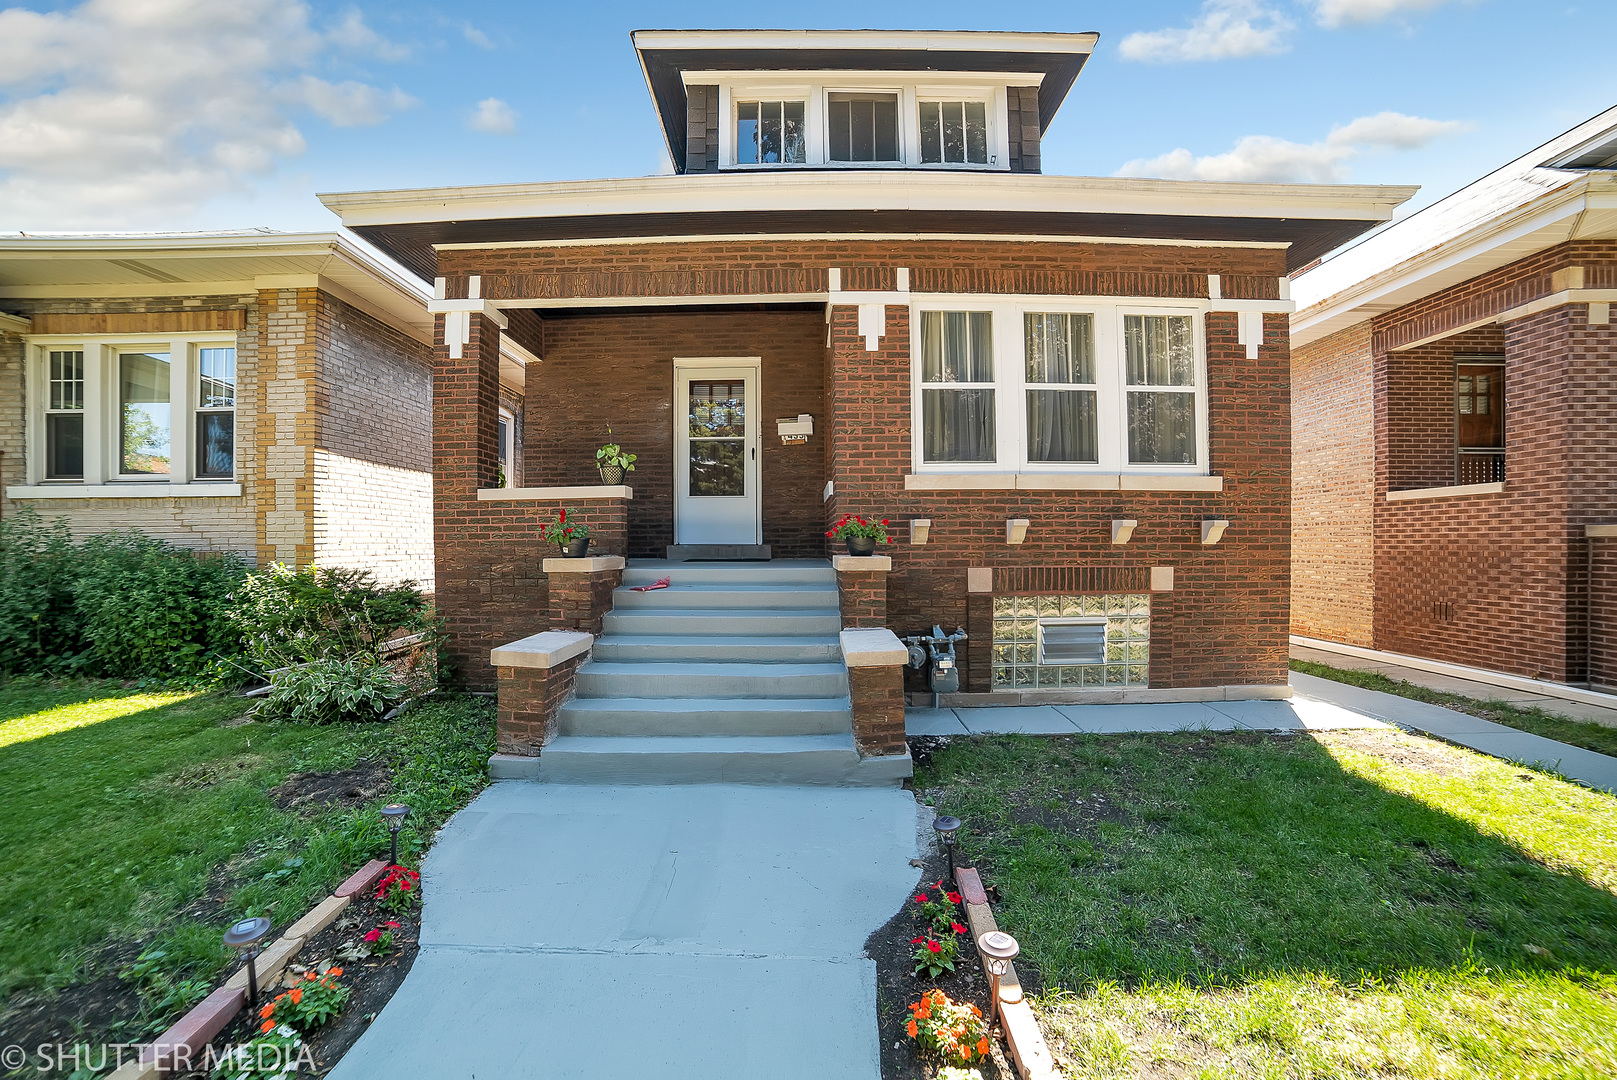 1433 S 61st Ave, Cicero, IL 60804 - MLS 10476083 - Coldwell Banker